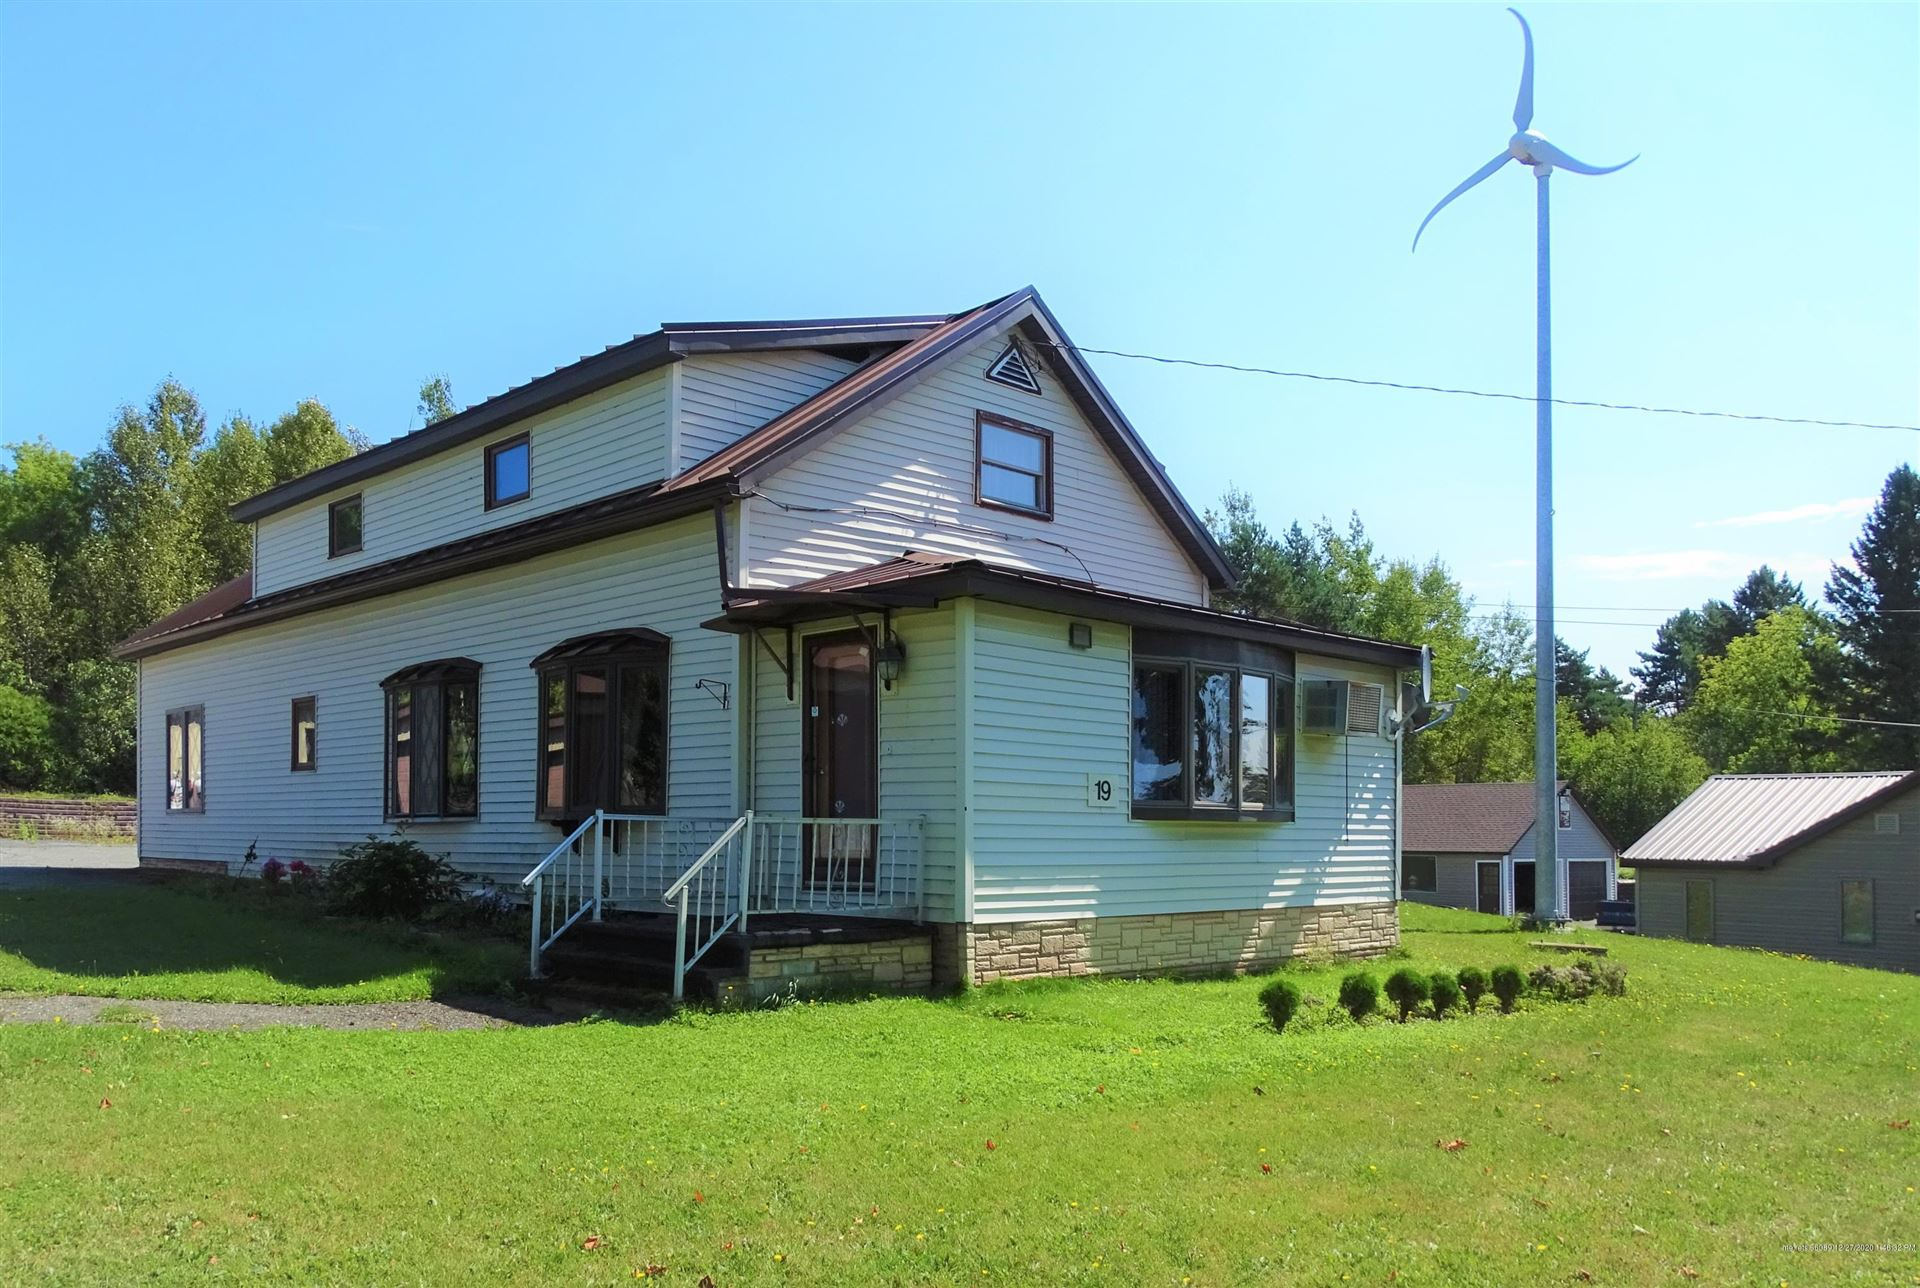 Photo of 19 Caribou Road, Presque Isle, ME 04769 (MLS # 1467257)